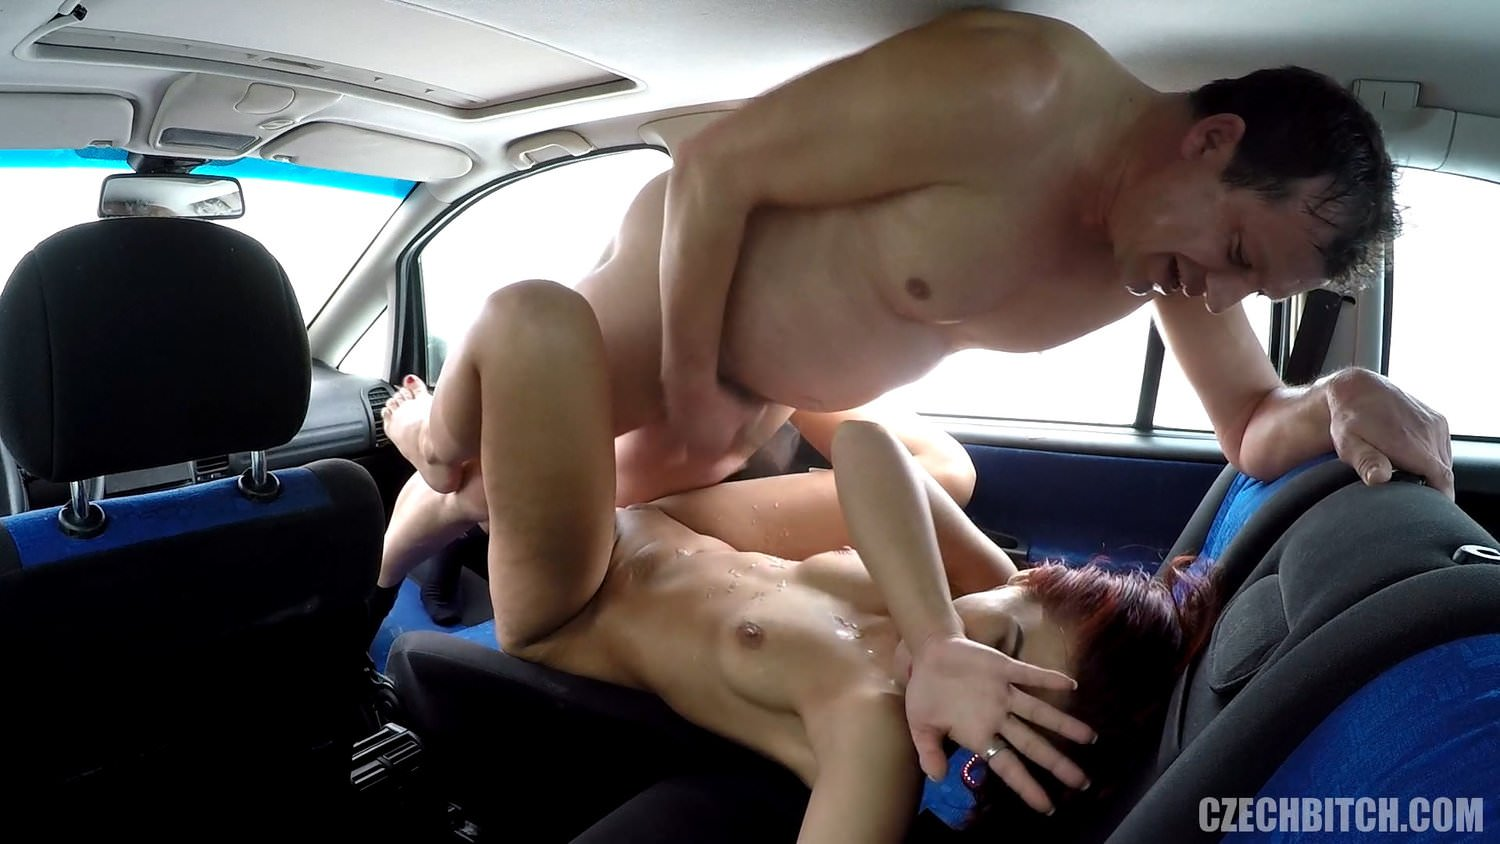 Real Czech Prostitute Takes Money For Car Sex Free Porn 7B-4836